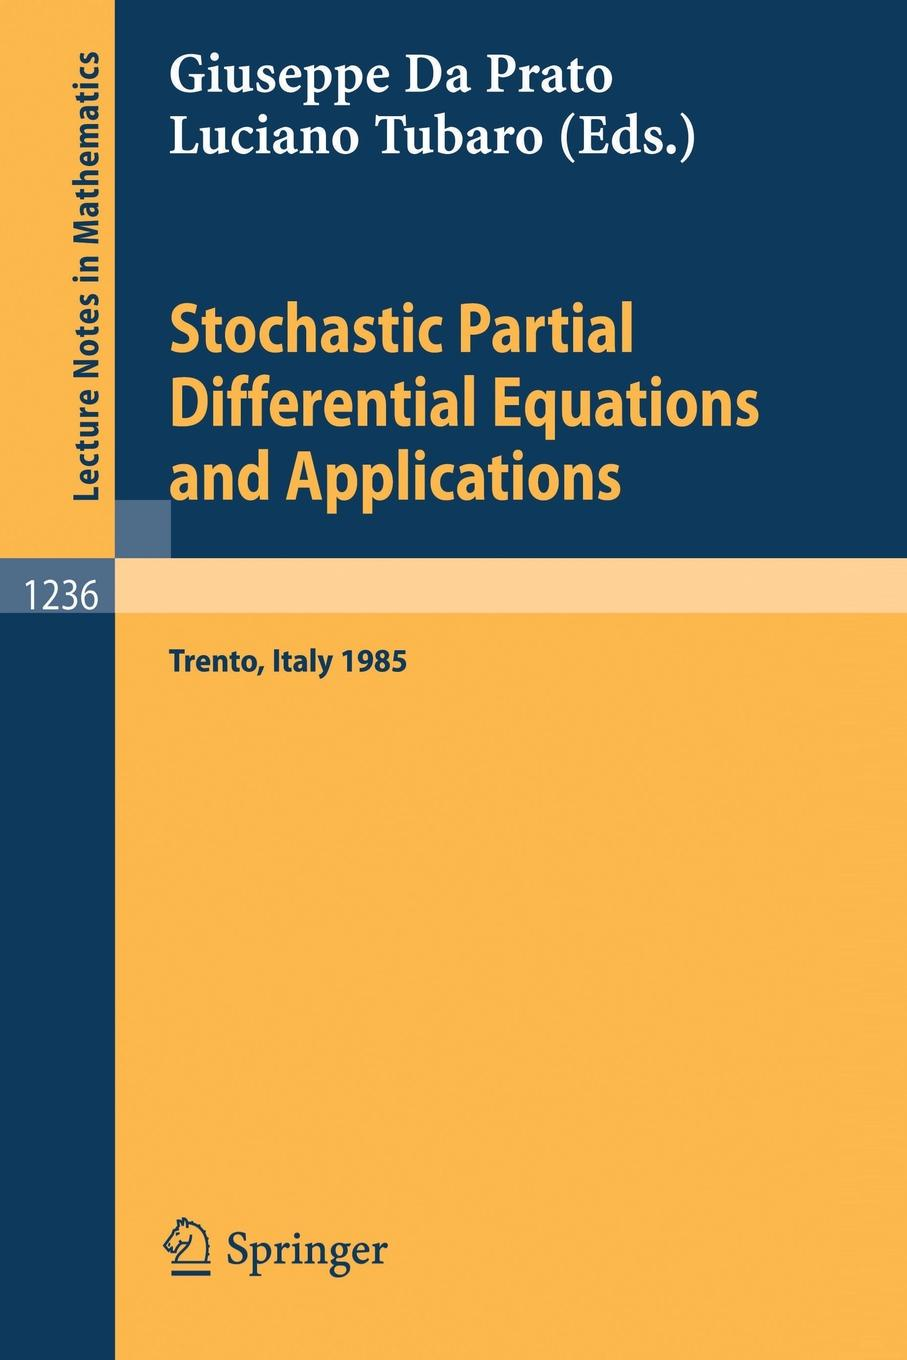 Stochastic Partial Differential Equations and Applications. Proceedings of a Conference held in Trento, Italy, September 30 - October 5, 1985